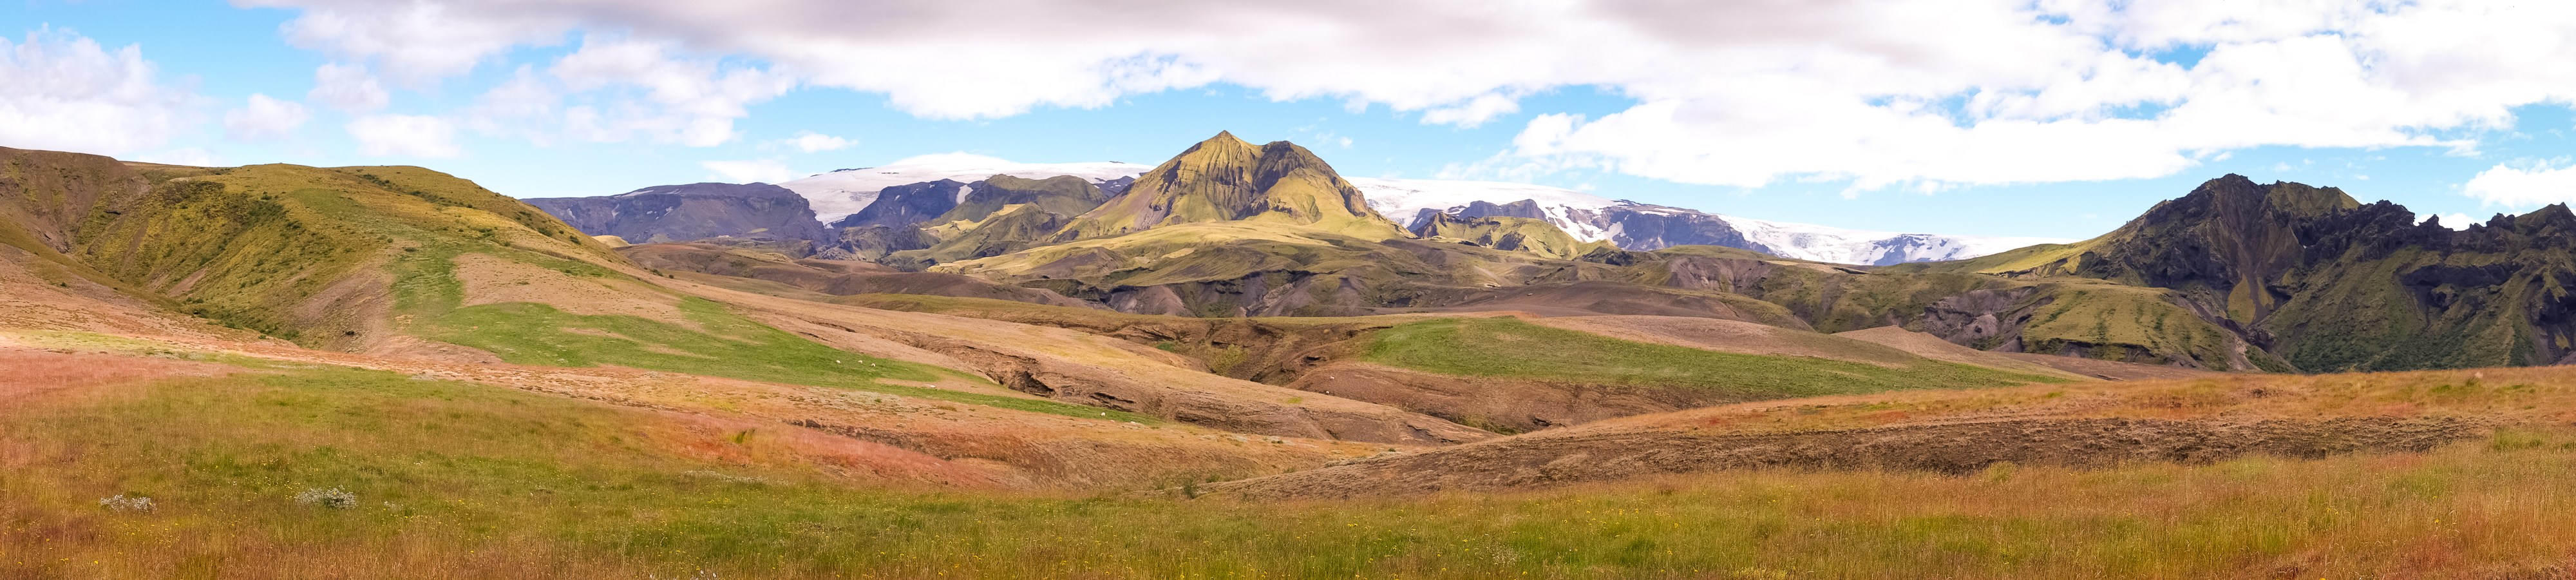 Panorama of part of Day 4 of the Laugavegur Trail - Icelandic Highlands